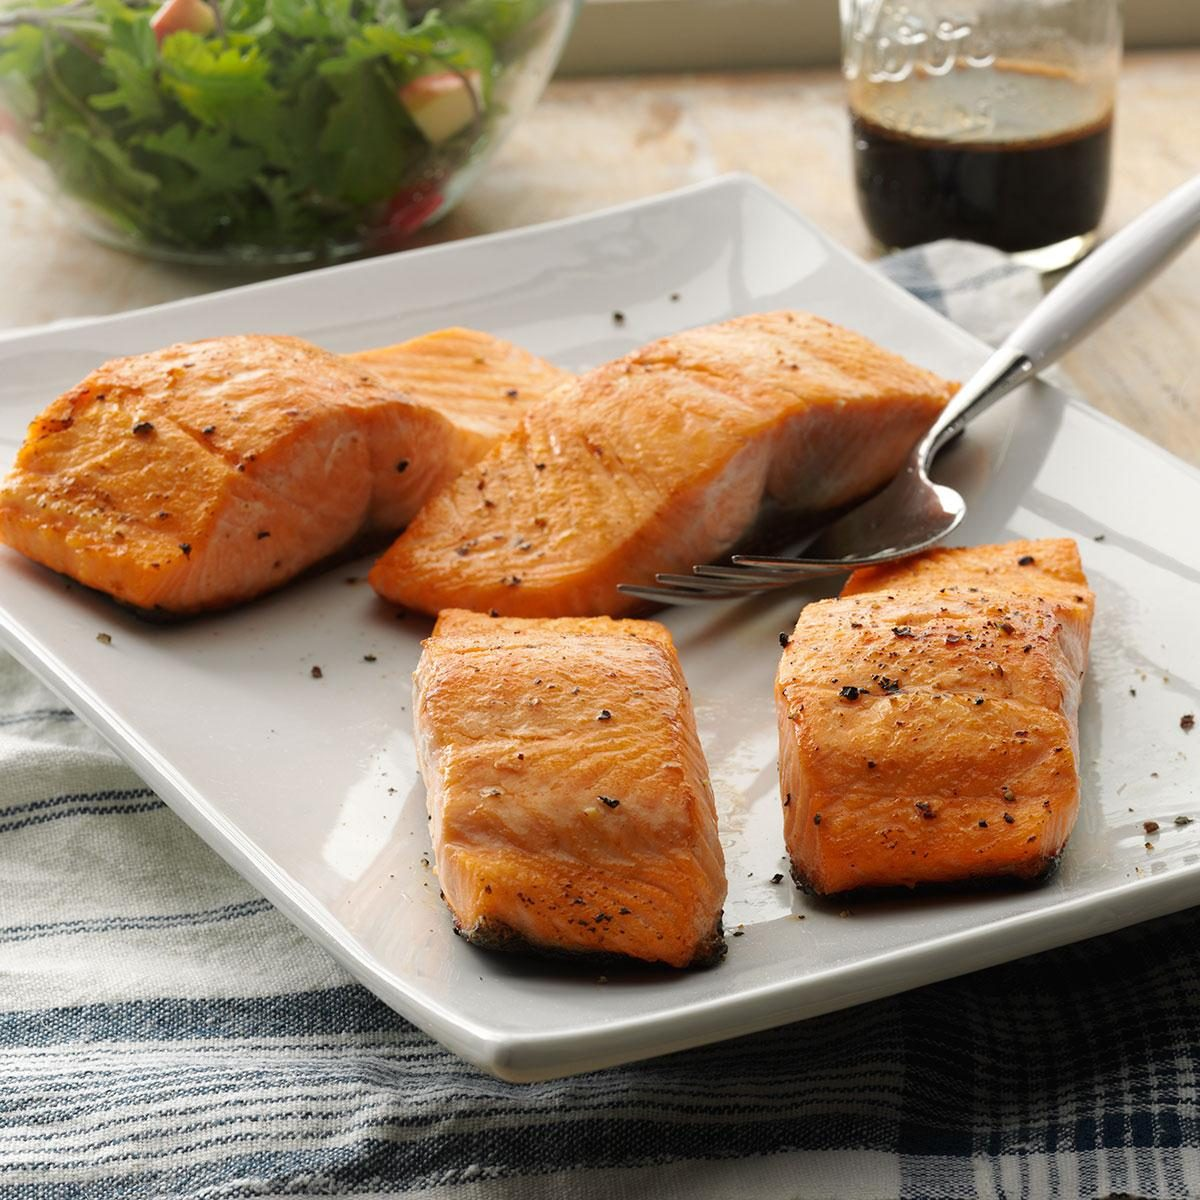 Day 20: Seared Salmon with Balsamic Sauce